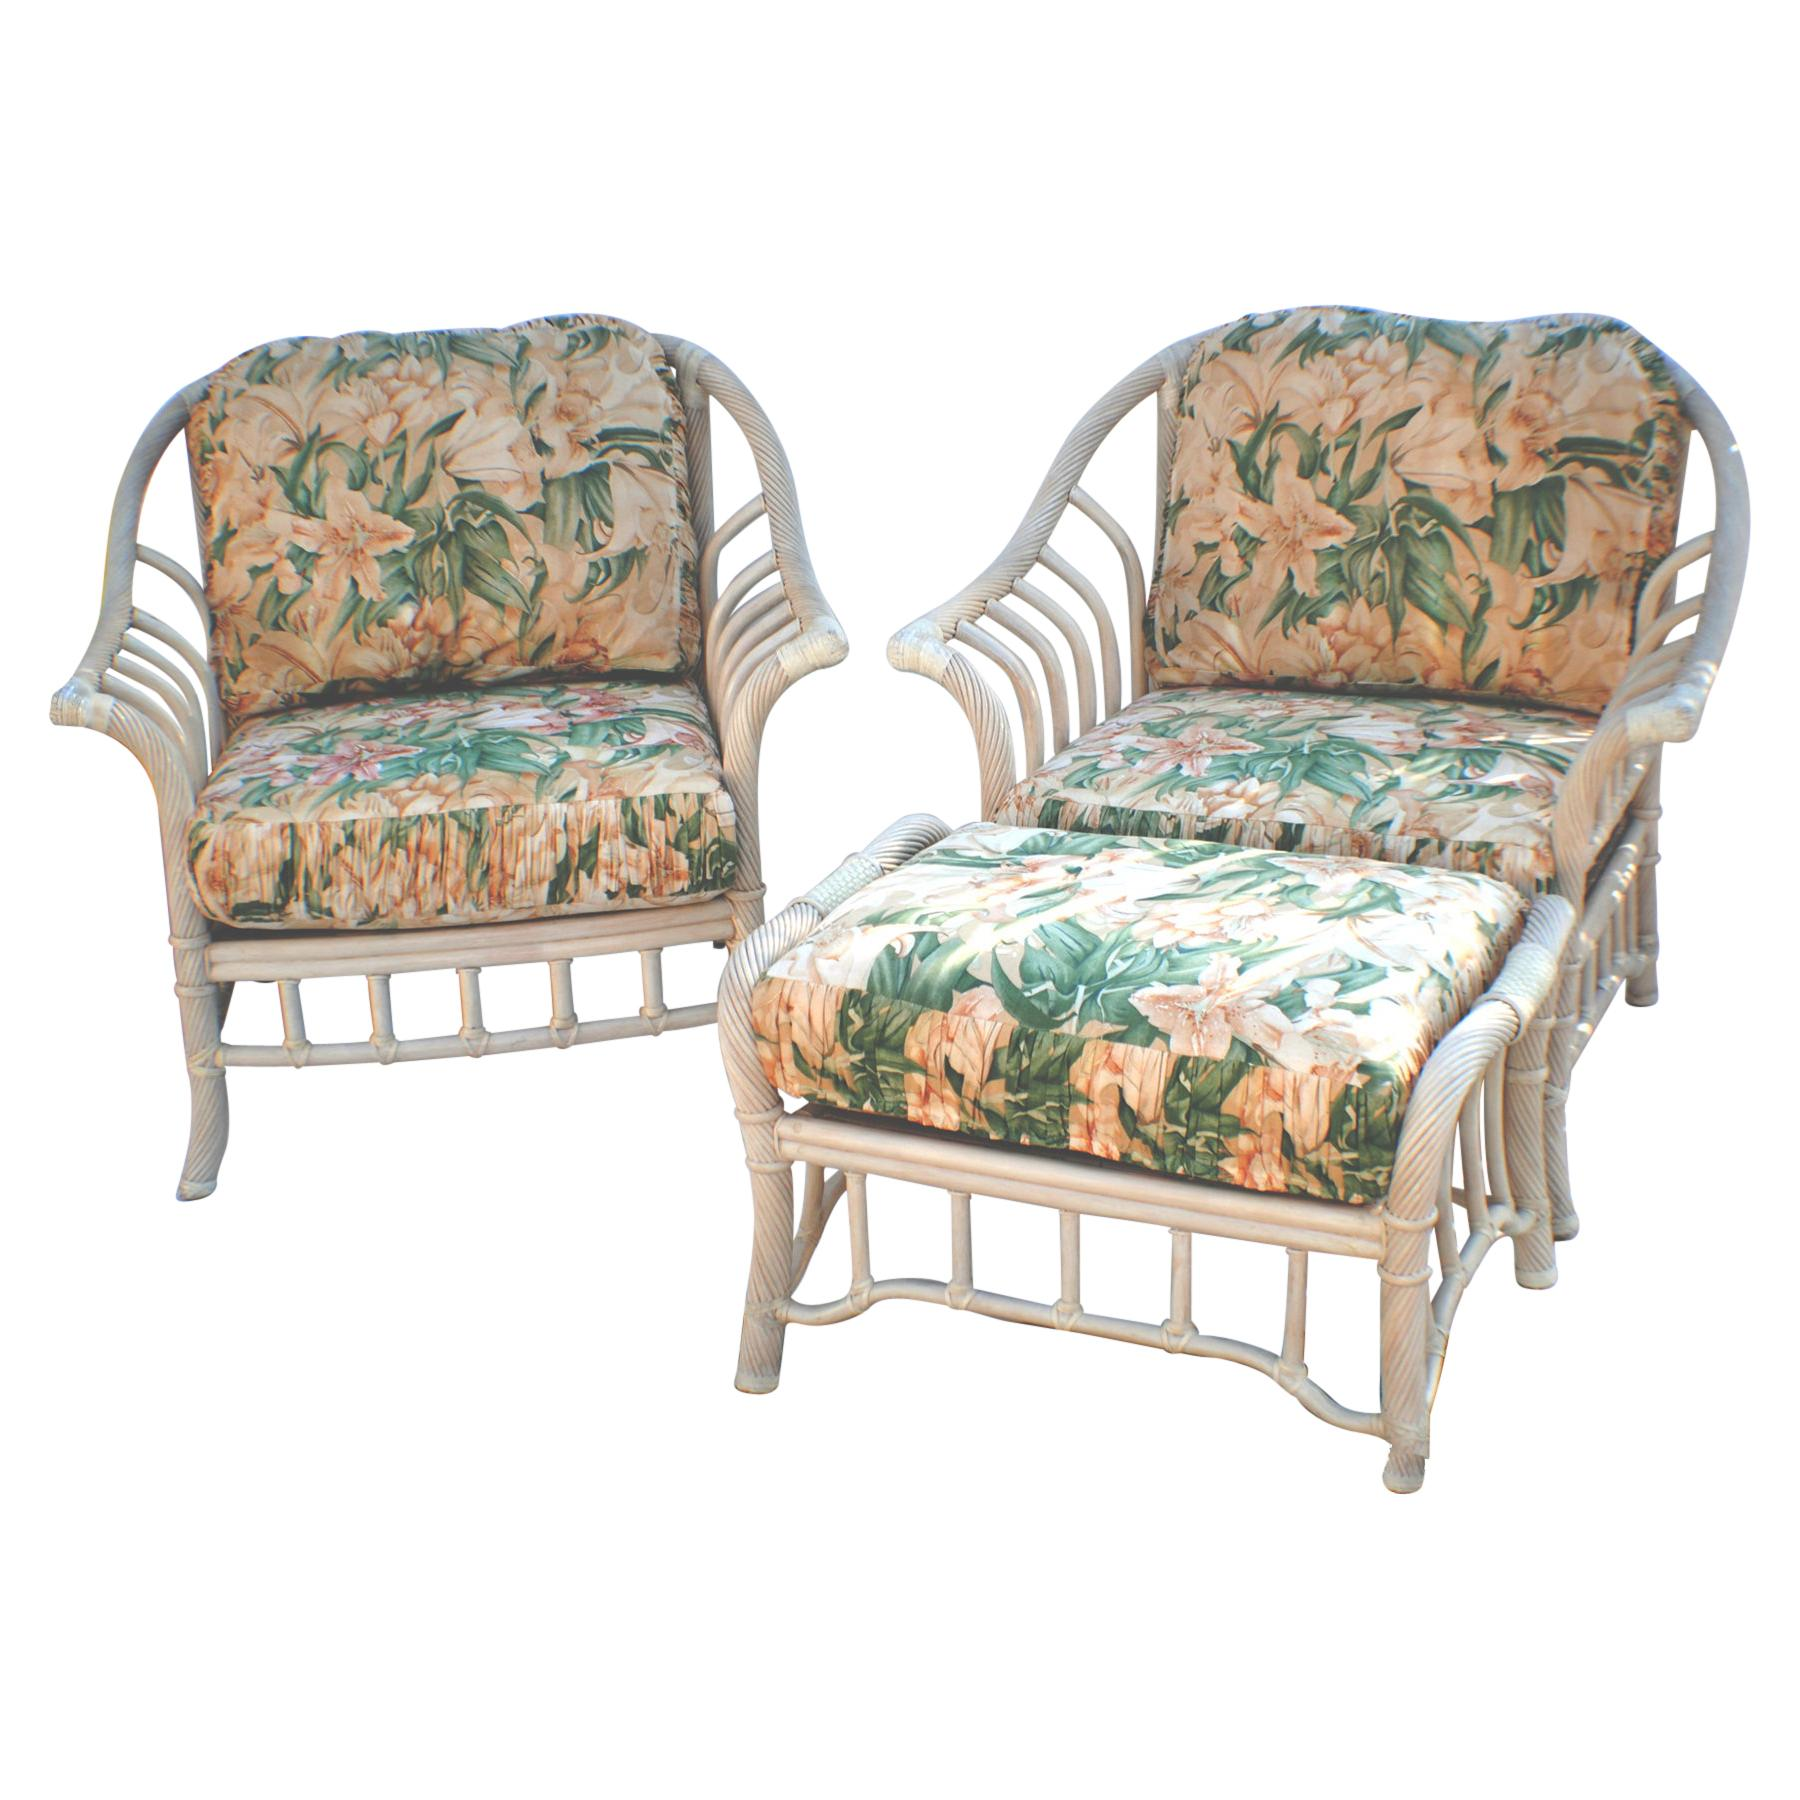 Pair Of Rattan Chairs With Ottoman